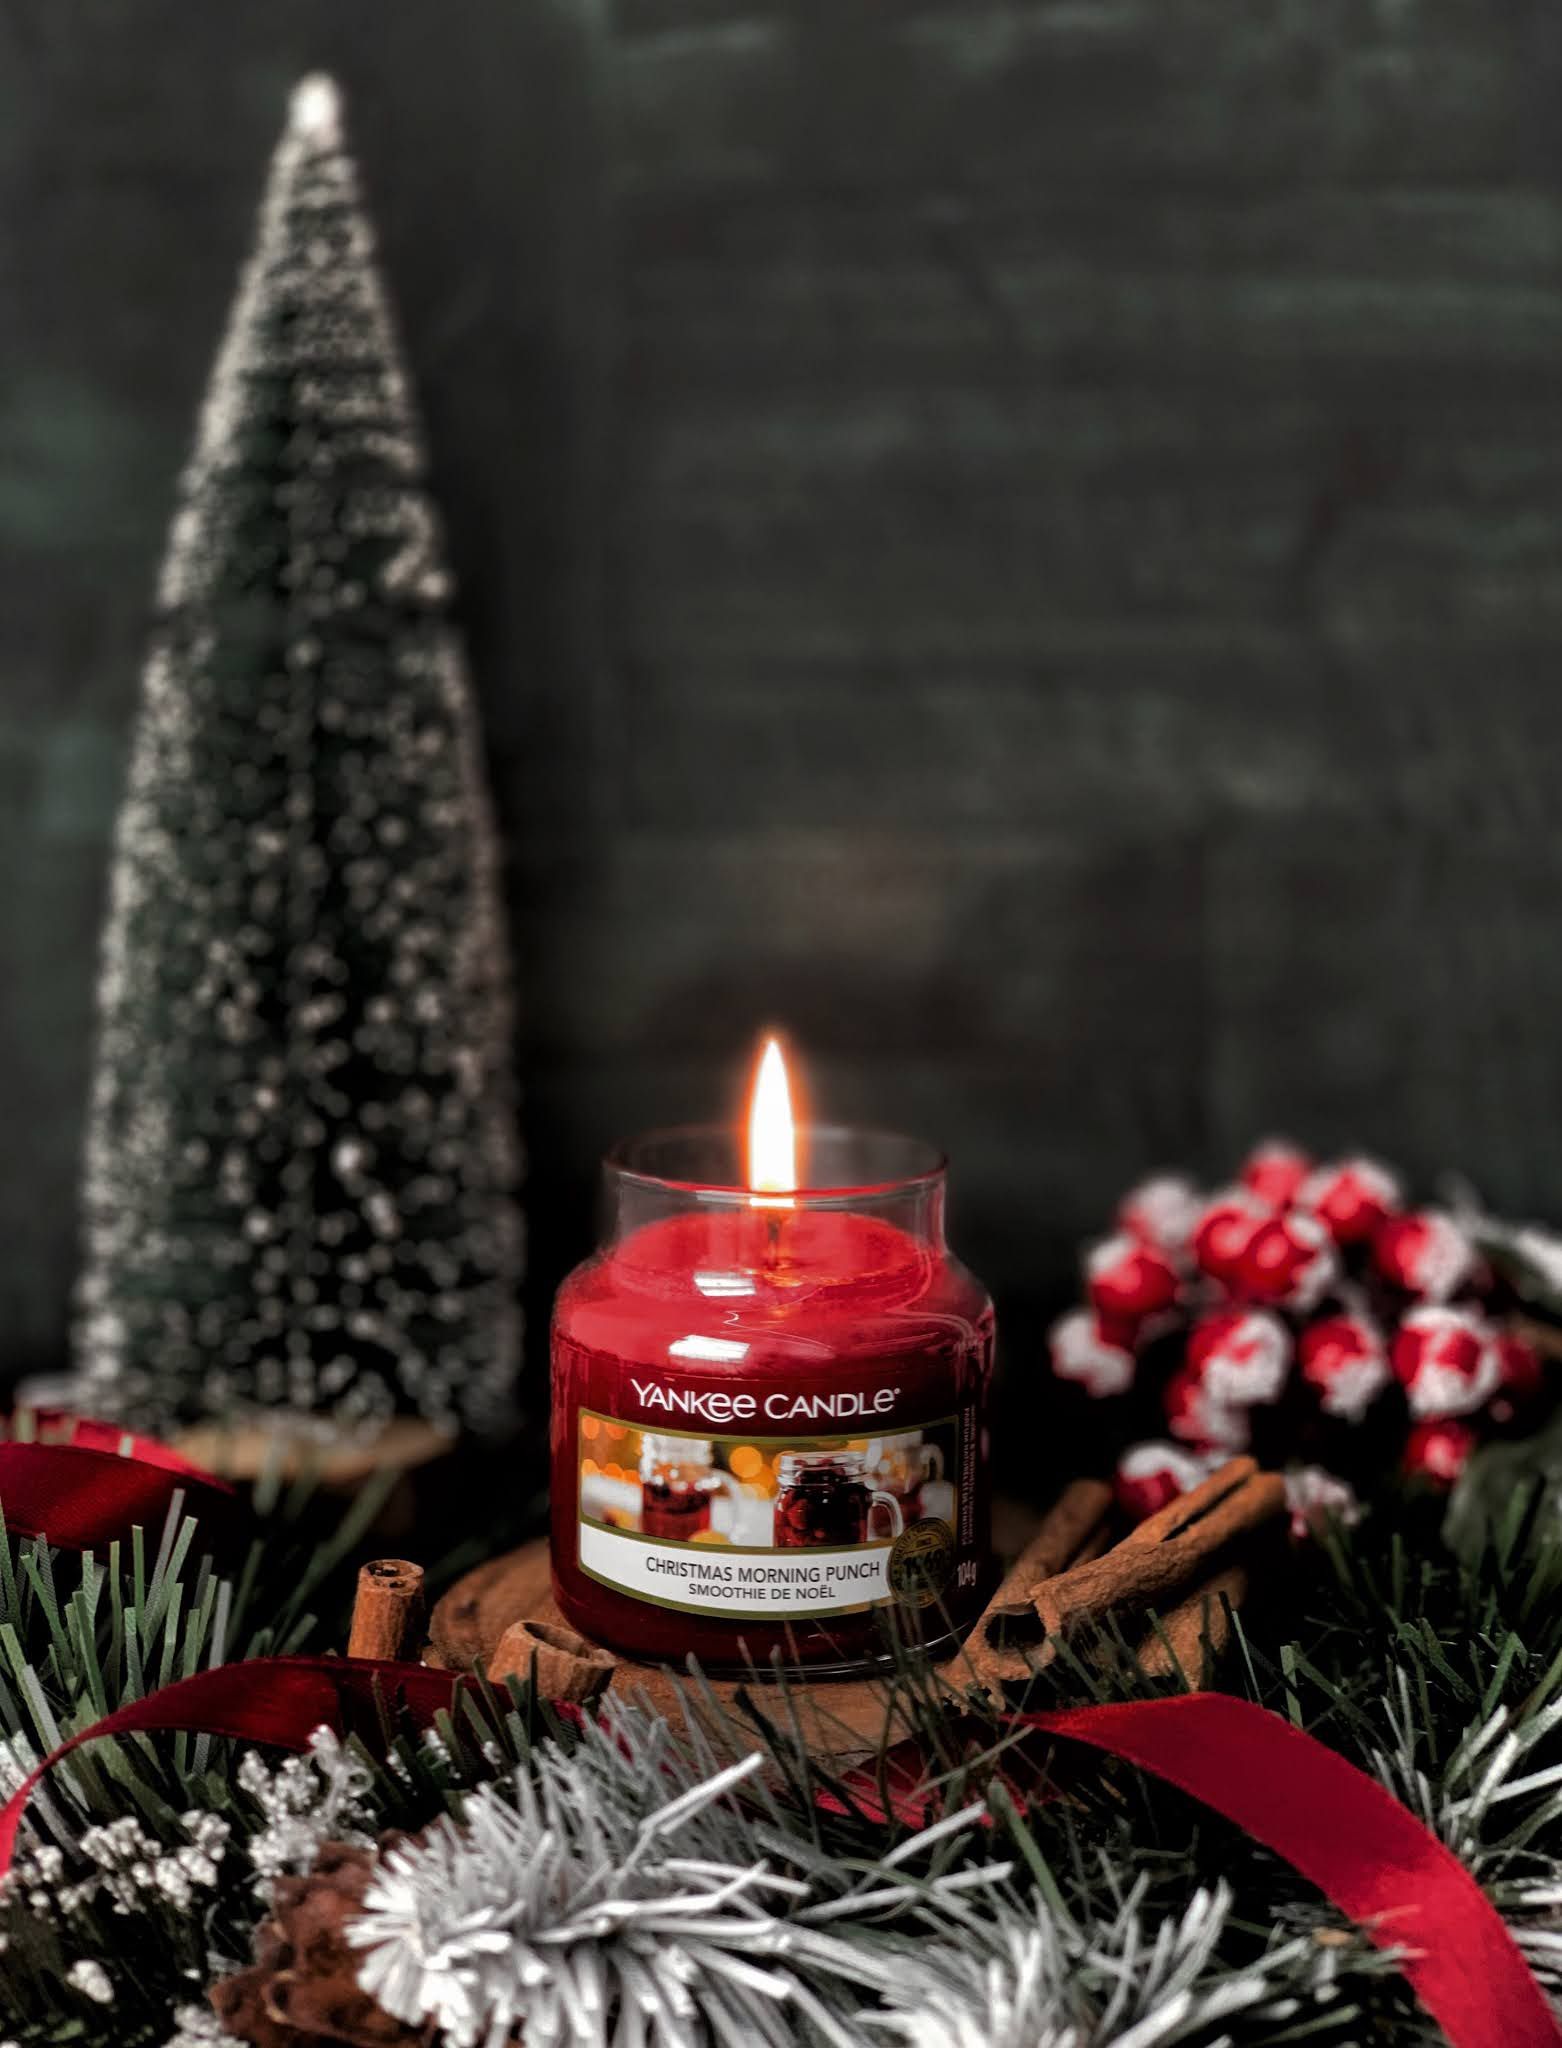 Christmas-Morning-Punch-Yankee-Candle